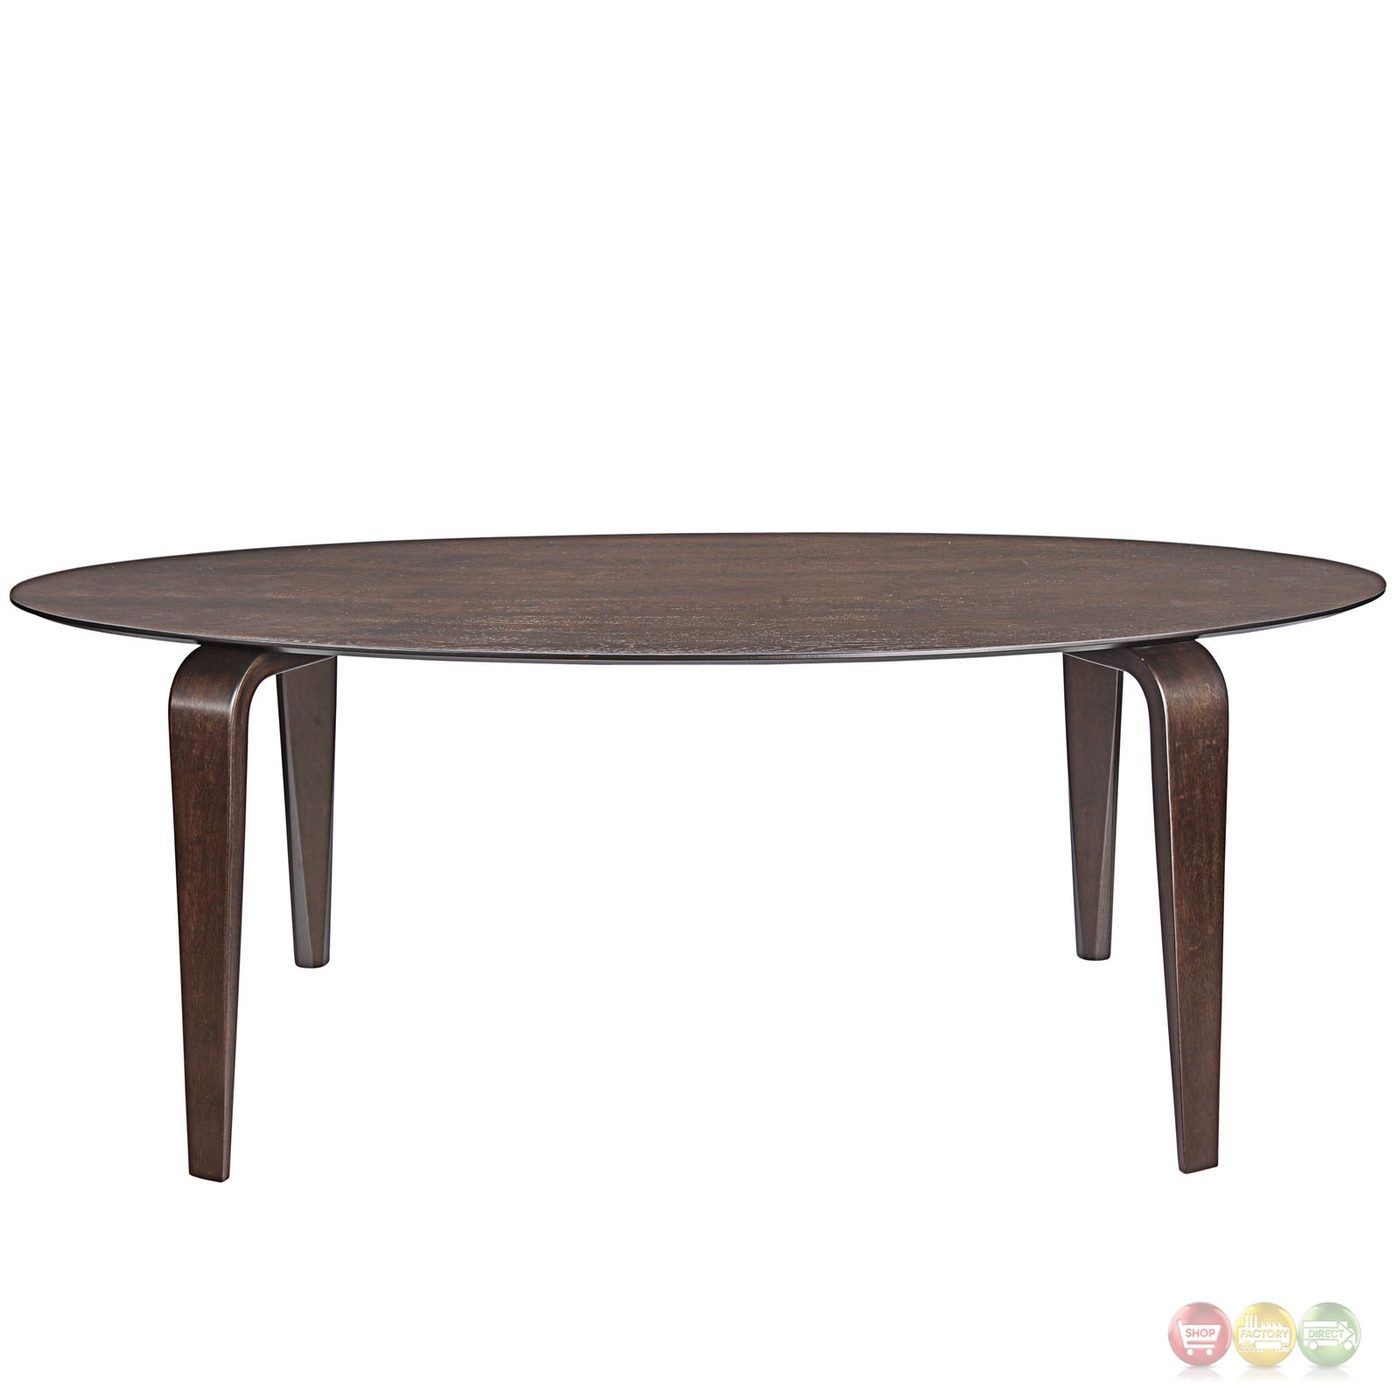 Event Contemporary Oval shaped Wood Dining Table Walnut : event contemporary oval shaped wood dining table walnut 7 from shopfactorydirect.com size 1400 x 1400 jpeg 184kB